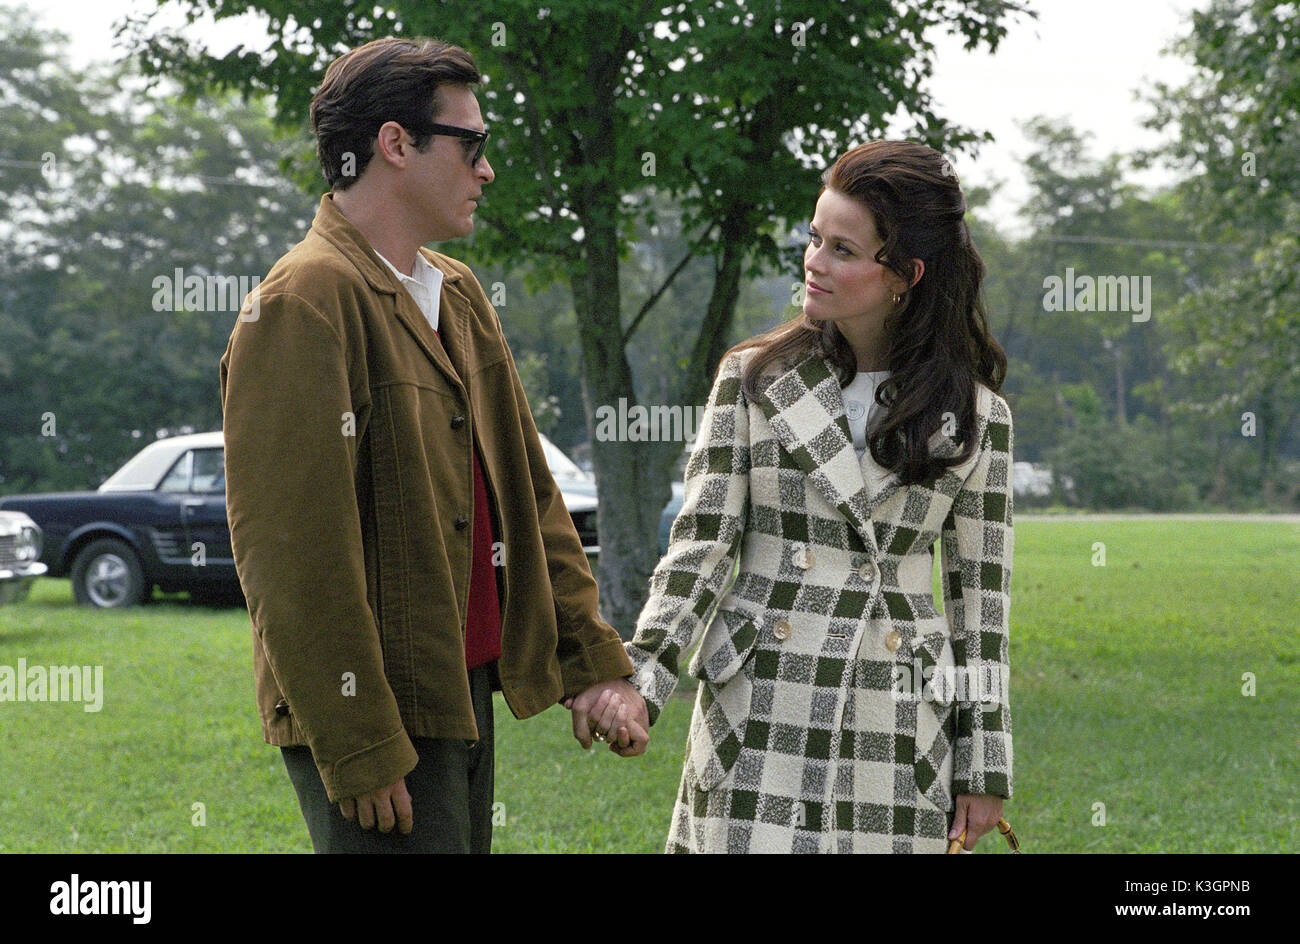 WTL-354 Joaquin Phoenix and Reese Witherspoon portray Johnny Cash and June Carter, in WALK THE LINE, which examines the early years of the music legend. Photo credit: Suzanne Tenner TM and © 2005 Twentieth Century Fox. All Rights Reserved. Not for sale or duplication. WALK THE LINE JOAQUIN PHOENIX as JOHNNY CASH, REESE WITHERSPOON as JUNE CARTER WTL-354 Joaquin Phoenix and Reese Witherspoon portray Johnny Cash and June Carter, in WALK THE LINE, which examines the early years of the music legend. Photo credit: Suzanne Tenner TM and  2005 Twentieth Century Fox. All Rights Reserved. Not for  - Stock Image